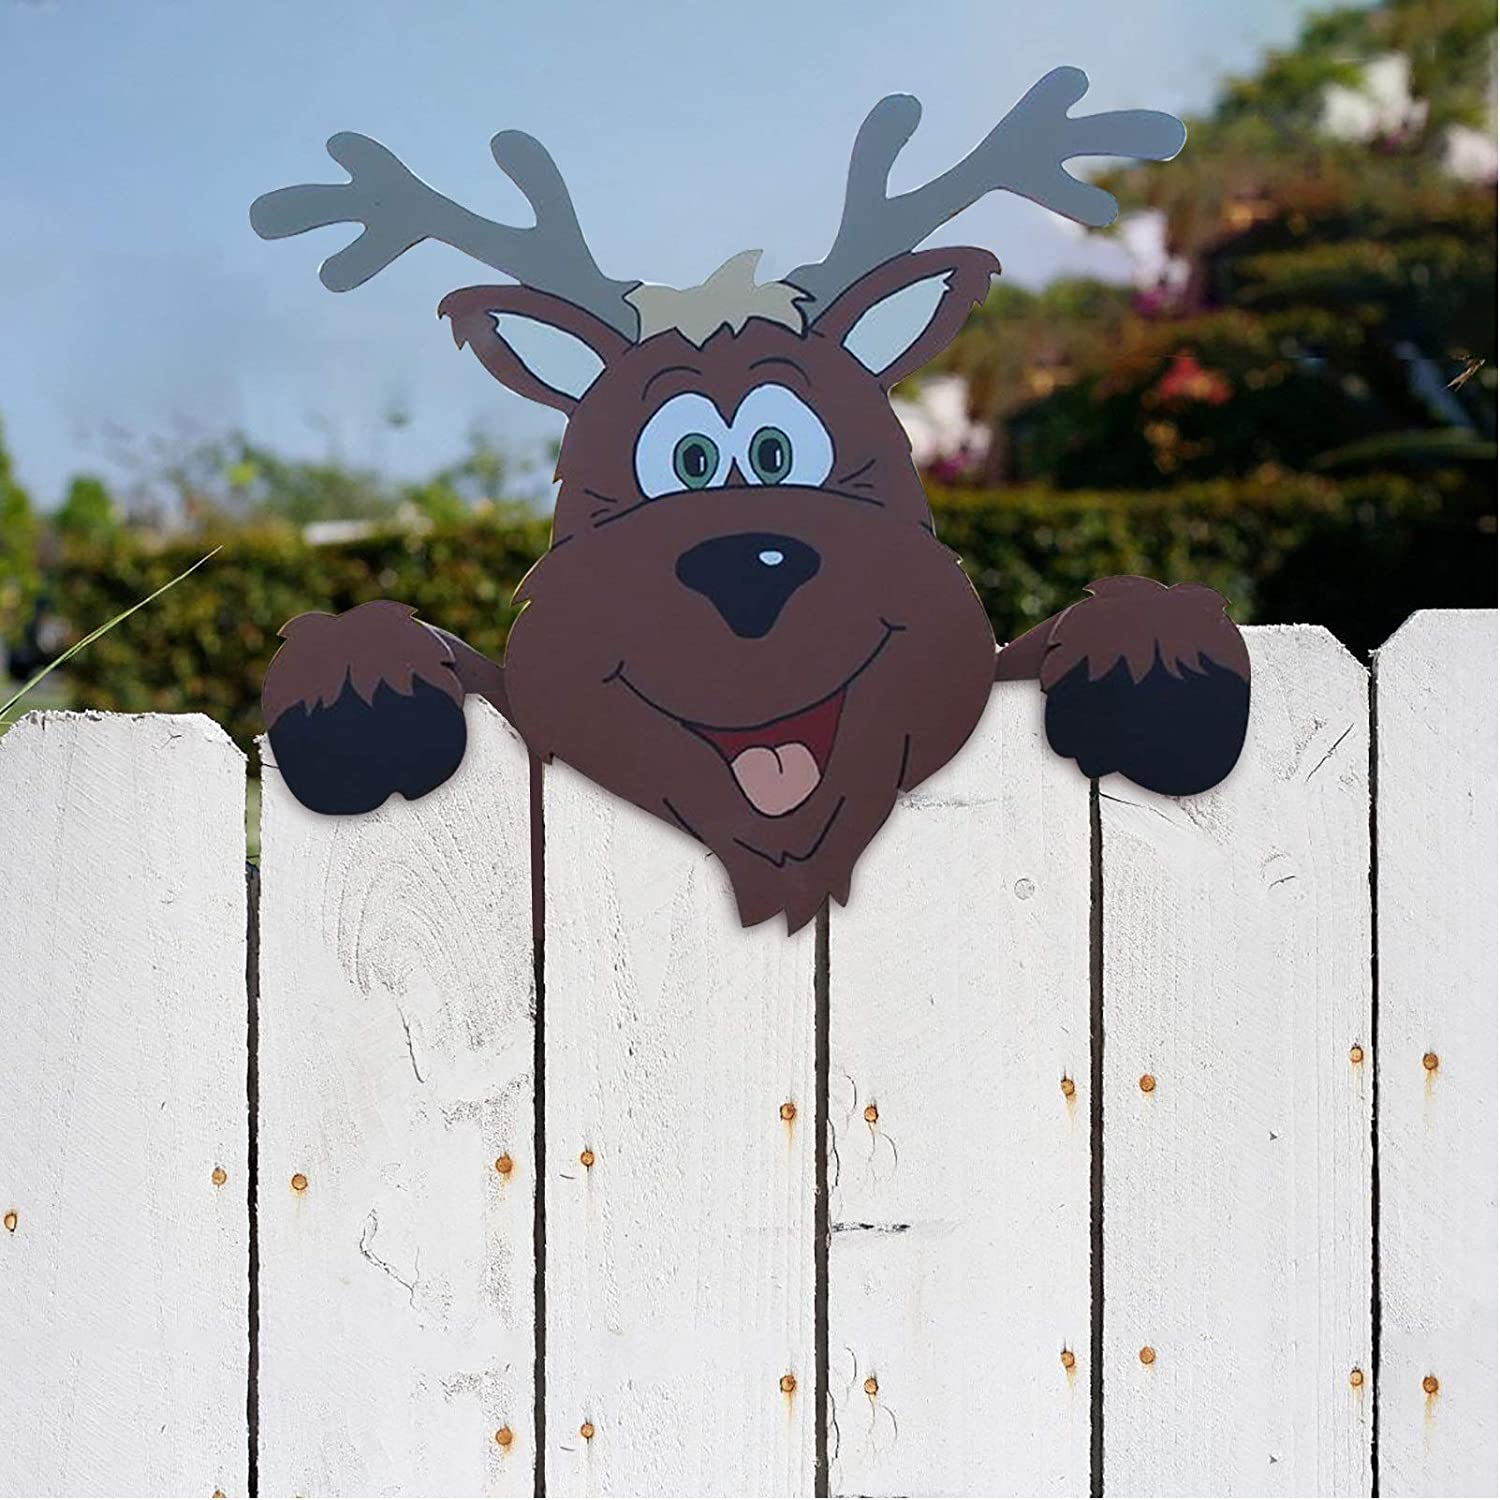 HCBY Christmas Yard Art Fence Peeker, Animal Fence and Garden Peeker, Charming Christmas Peeks at Elk,for Home Outdoor Yard Lawn Pathway Parking Fence Walkway Driveway Holiday Decorations